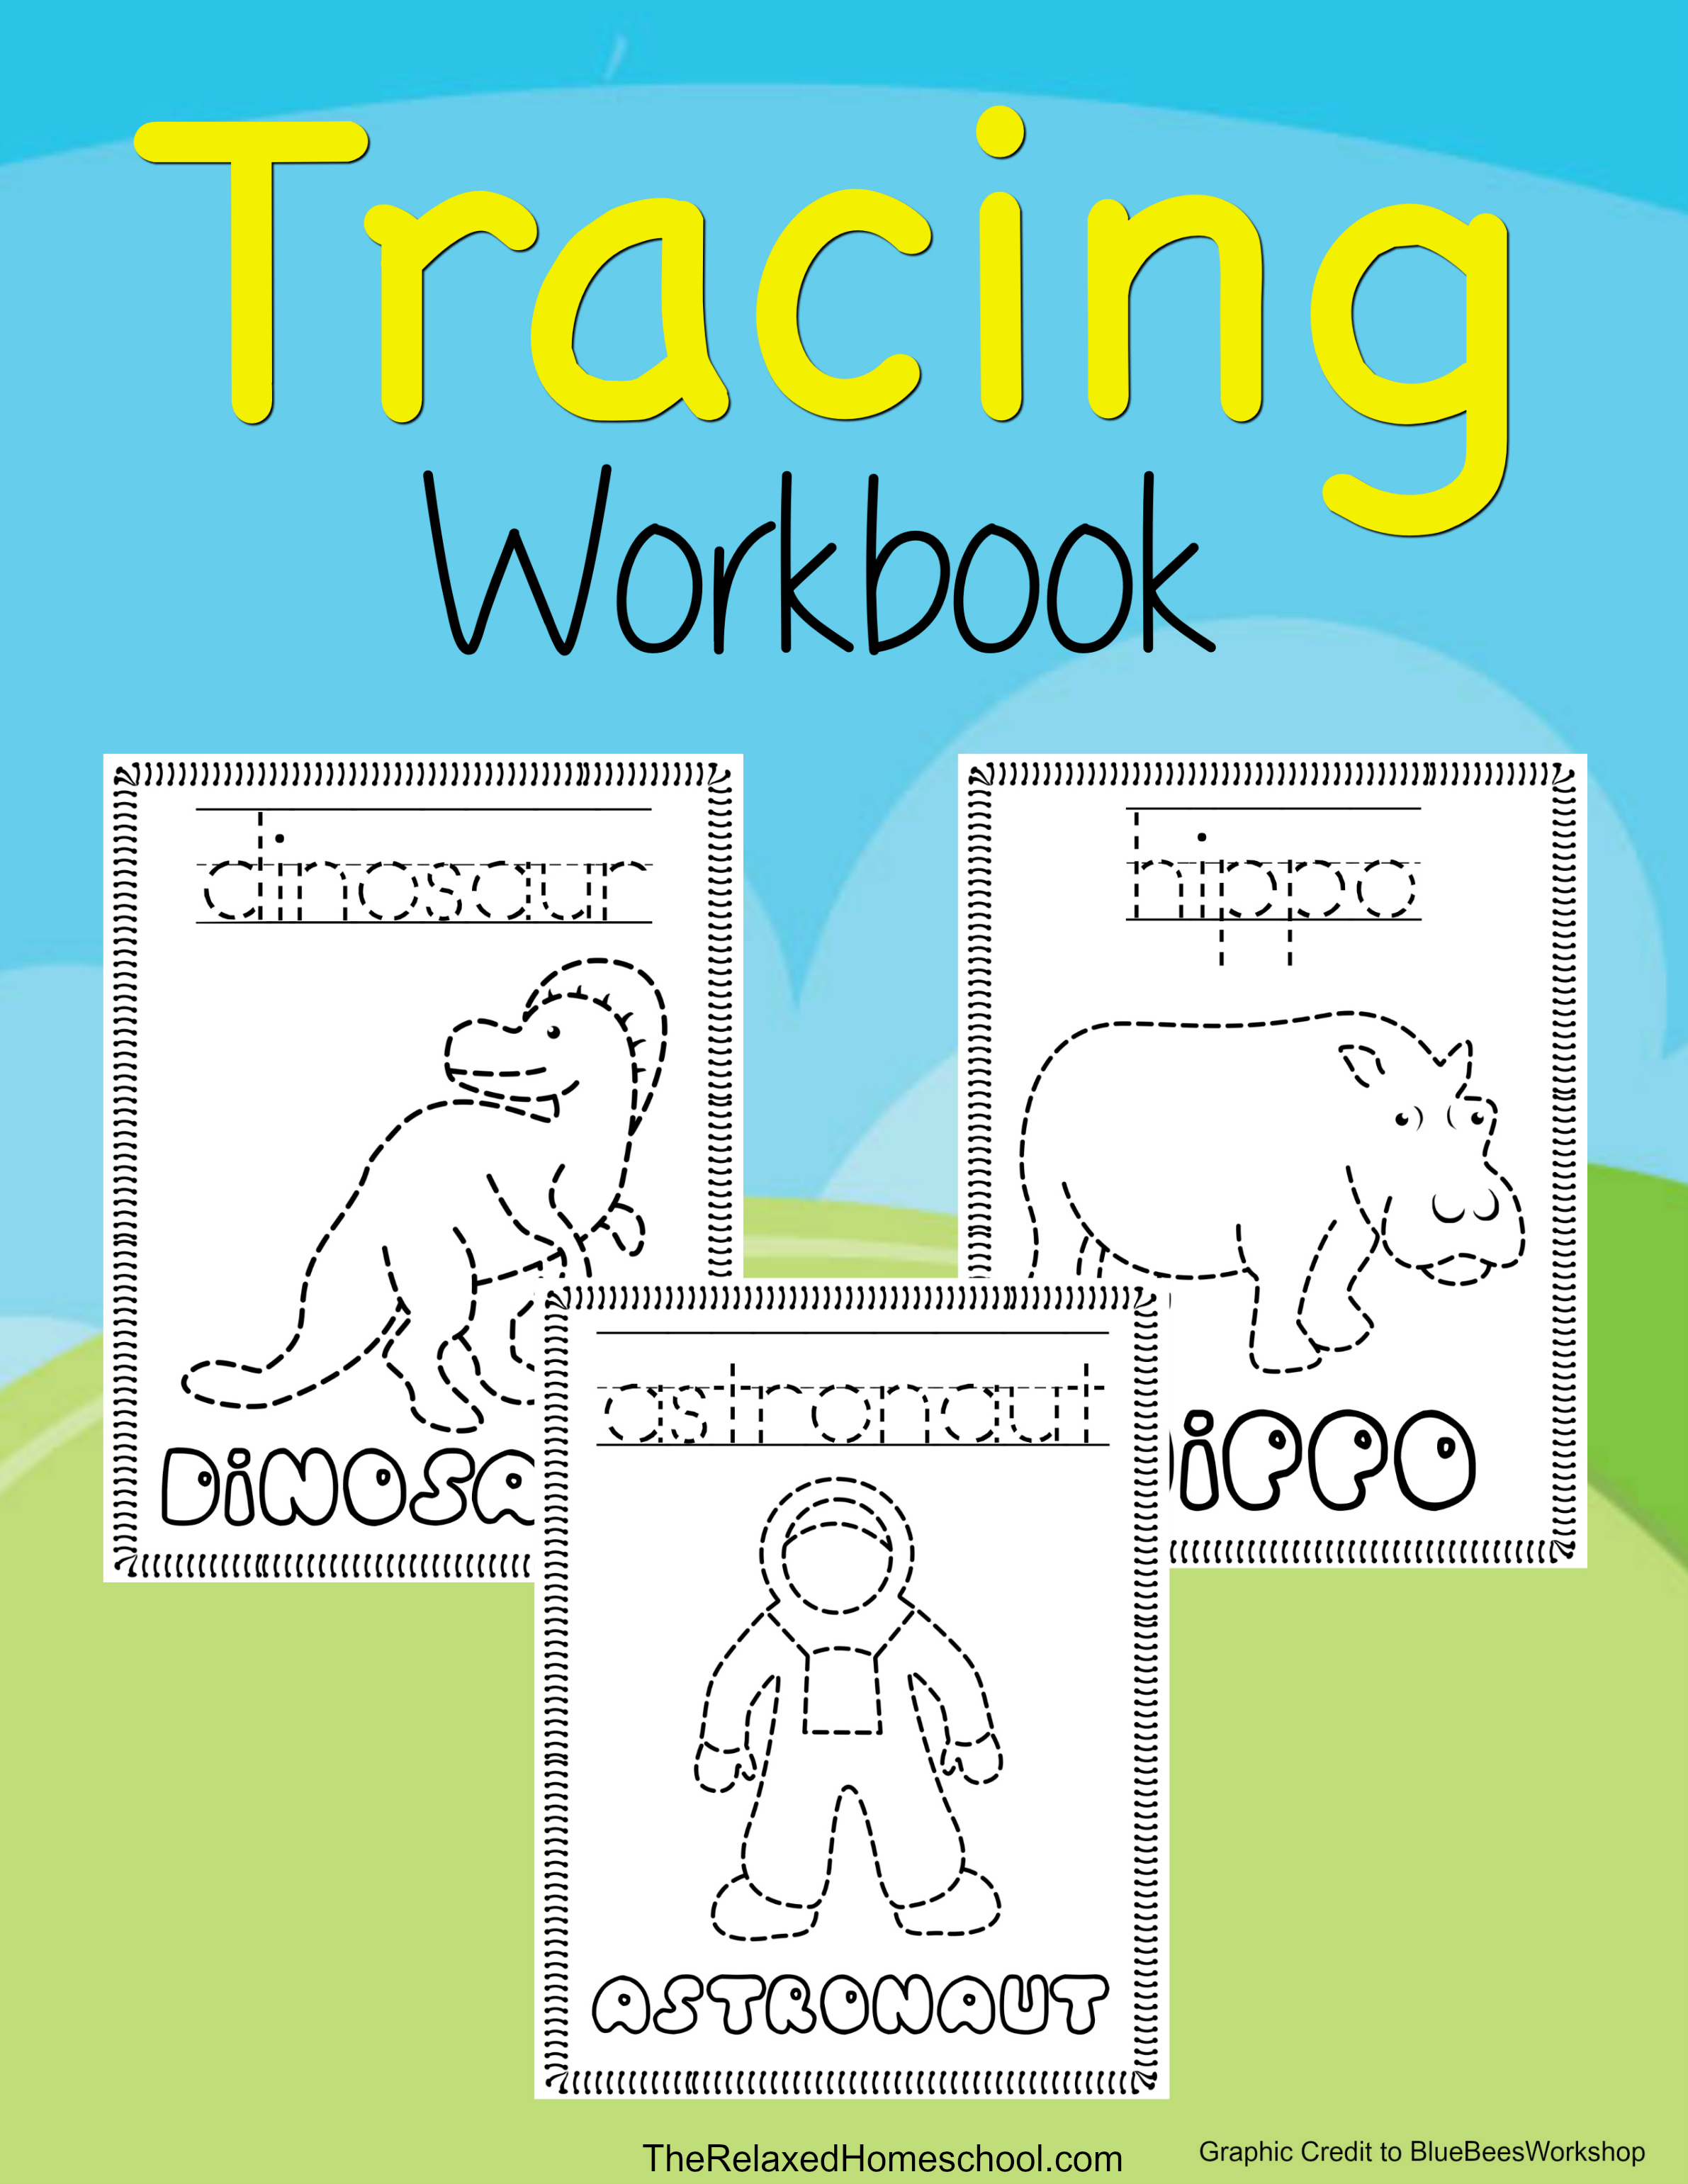 Download this FREE ABC Workbook for your children. Kids get to trace, color, and more with this fun workbook!